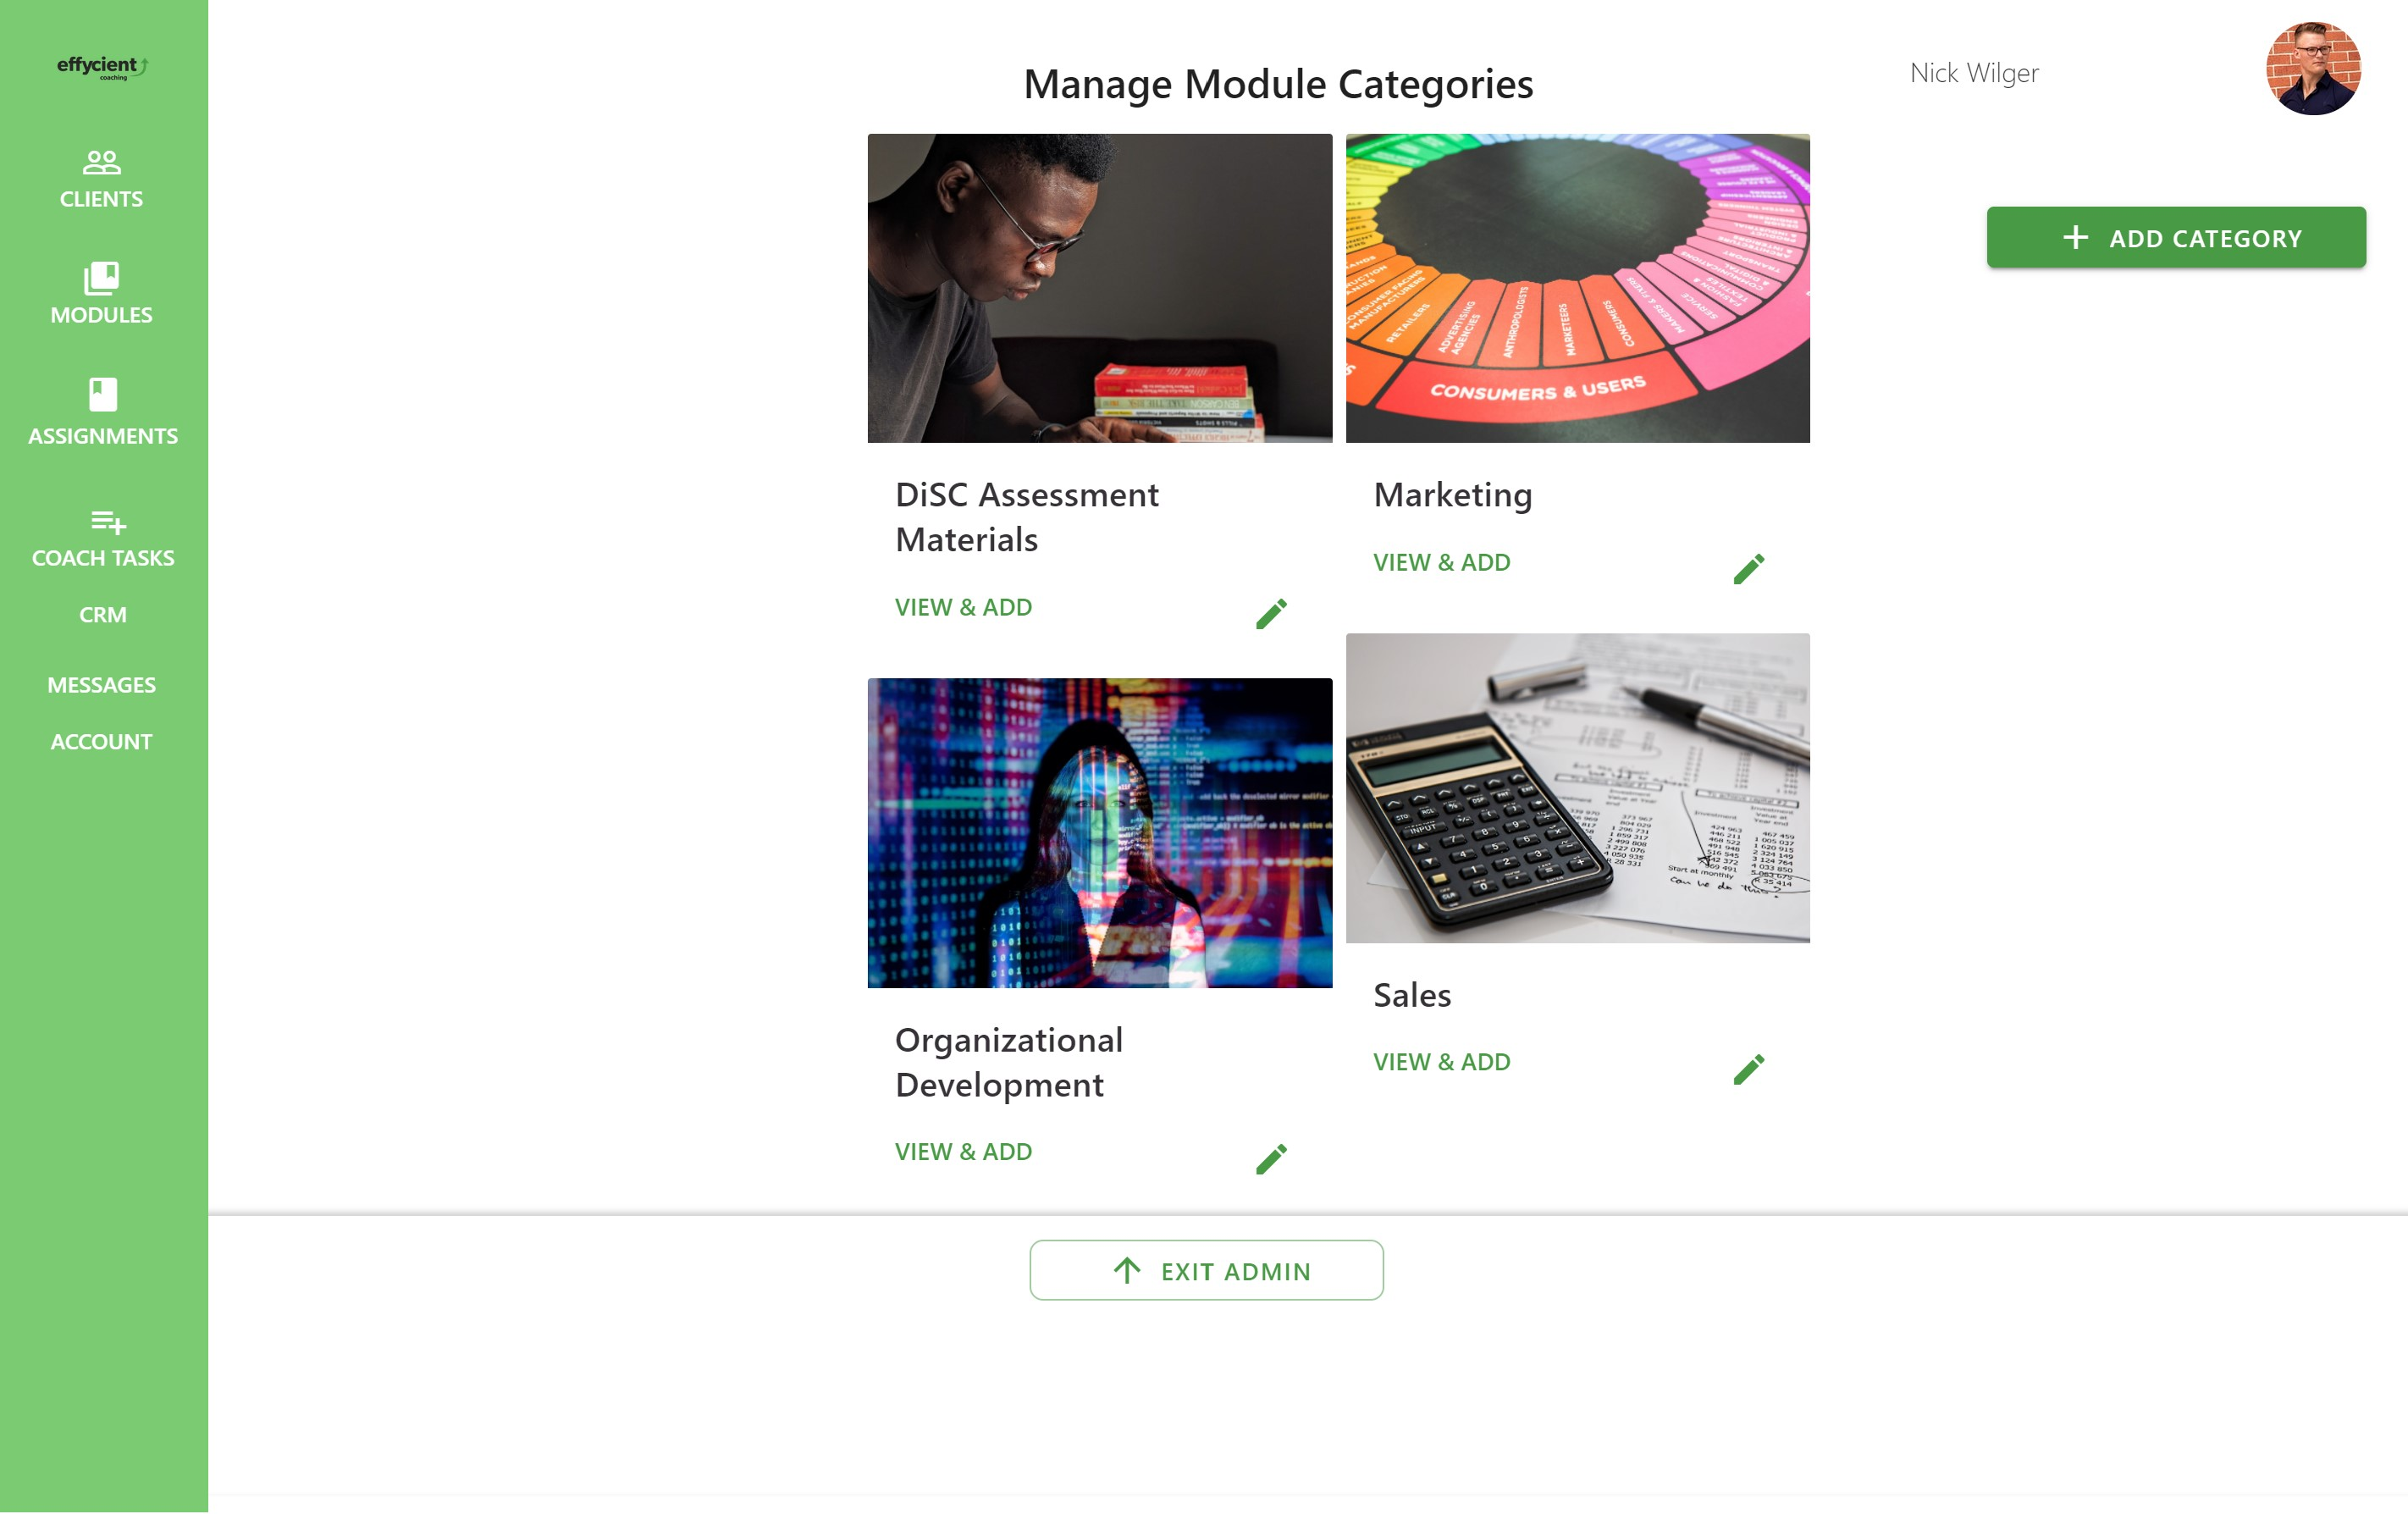 modules and categories